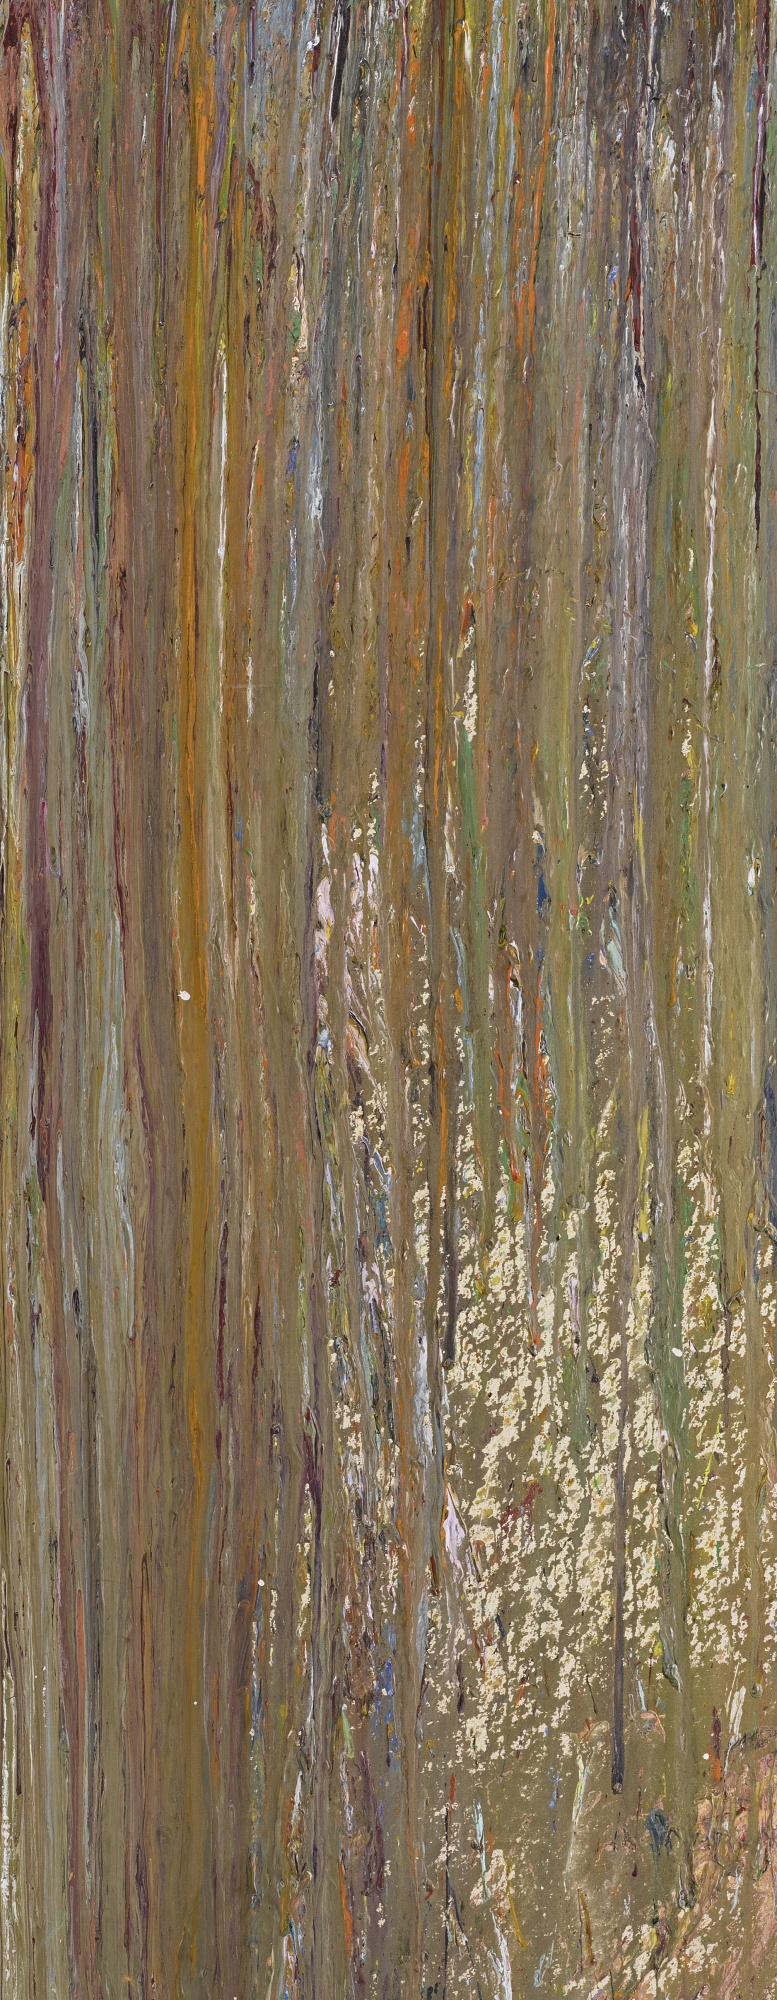 Larry Poons-Untitled-1974